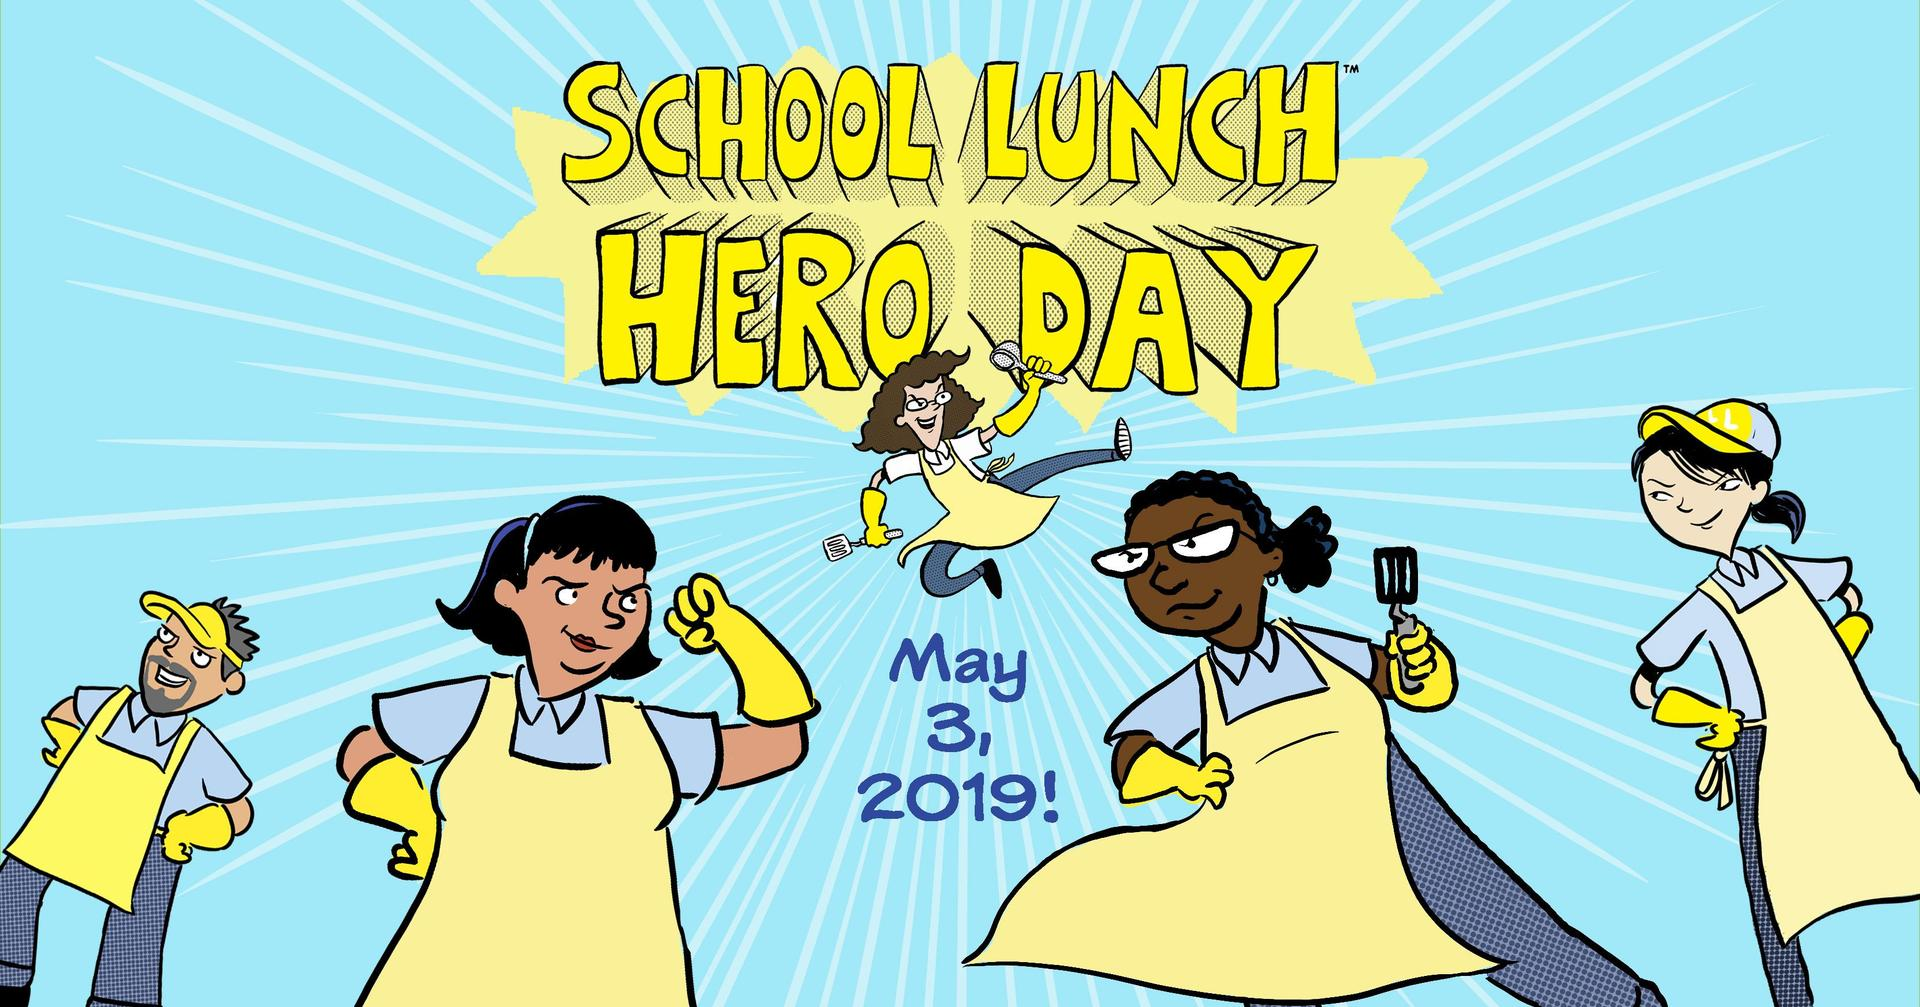 school lunch hero day may 3rd